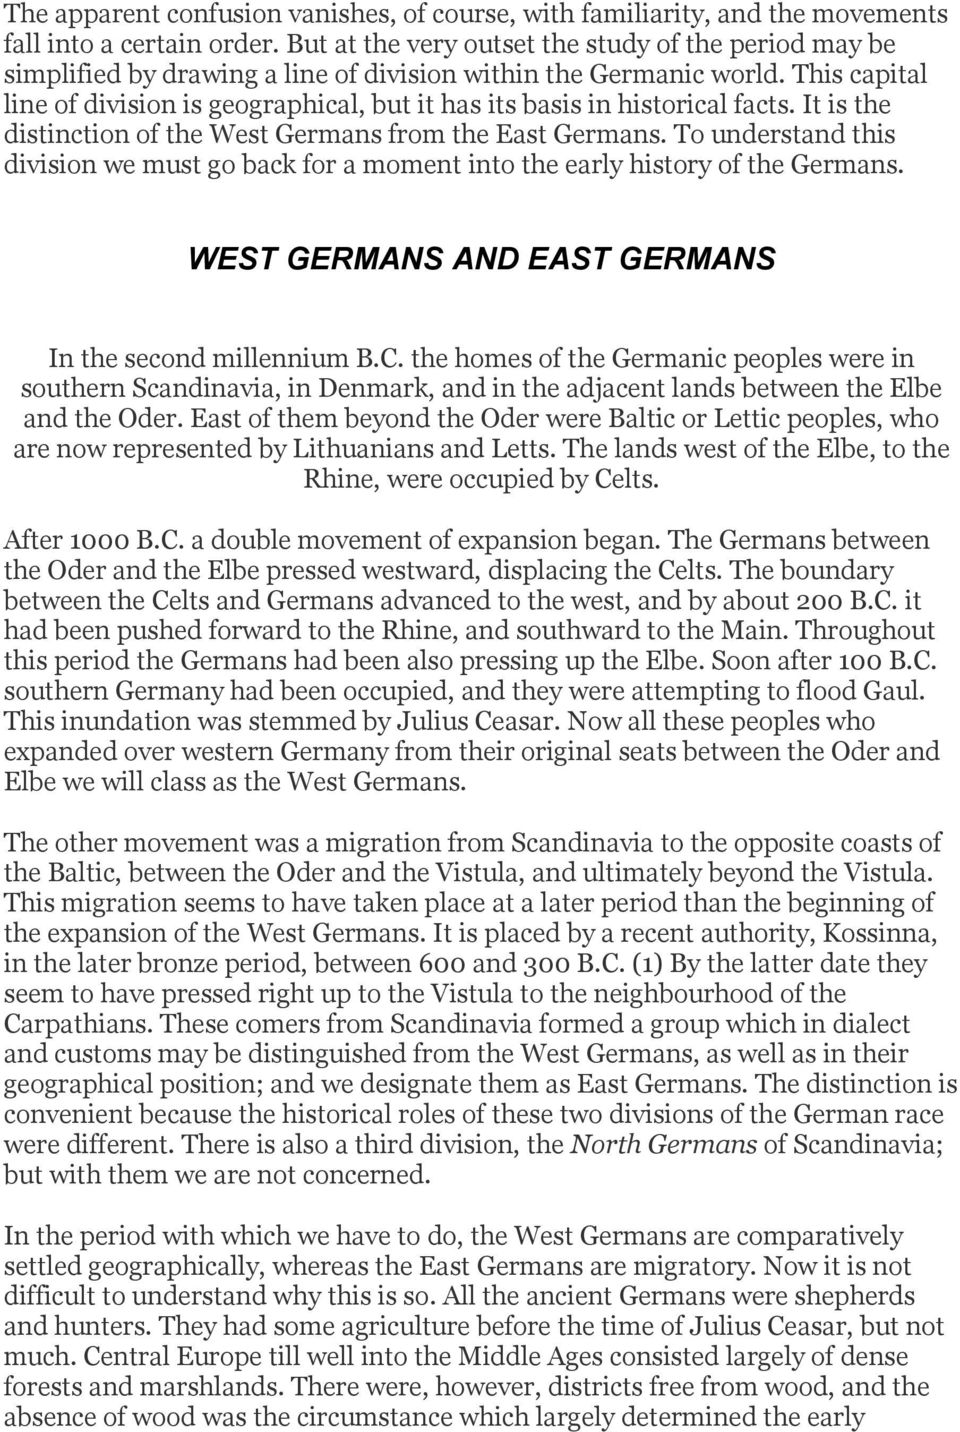 This capital line of division is geographical, but it has its basis in historical facts. It is the distinction of the West Germans from the East Germans.